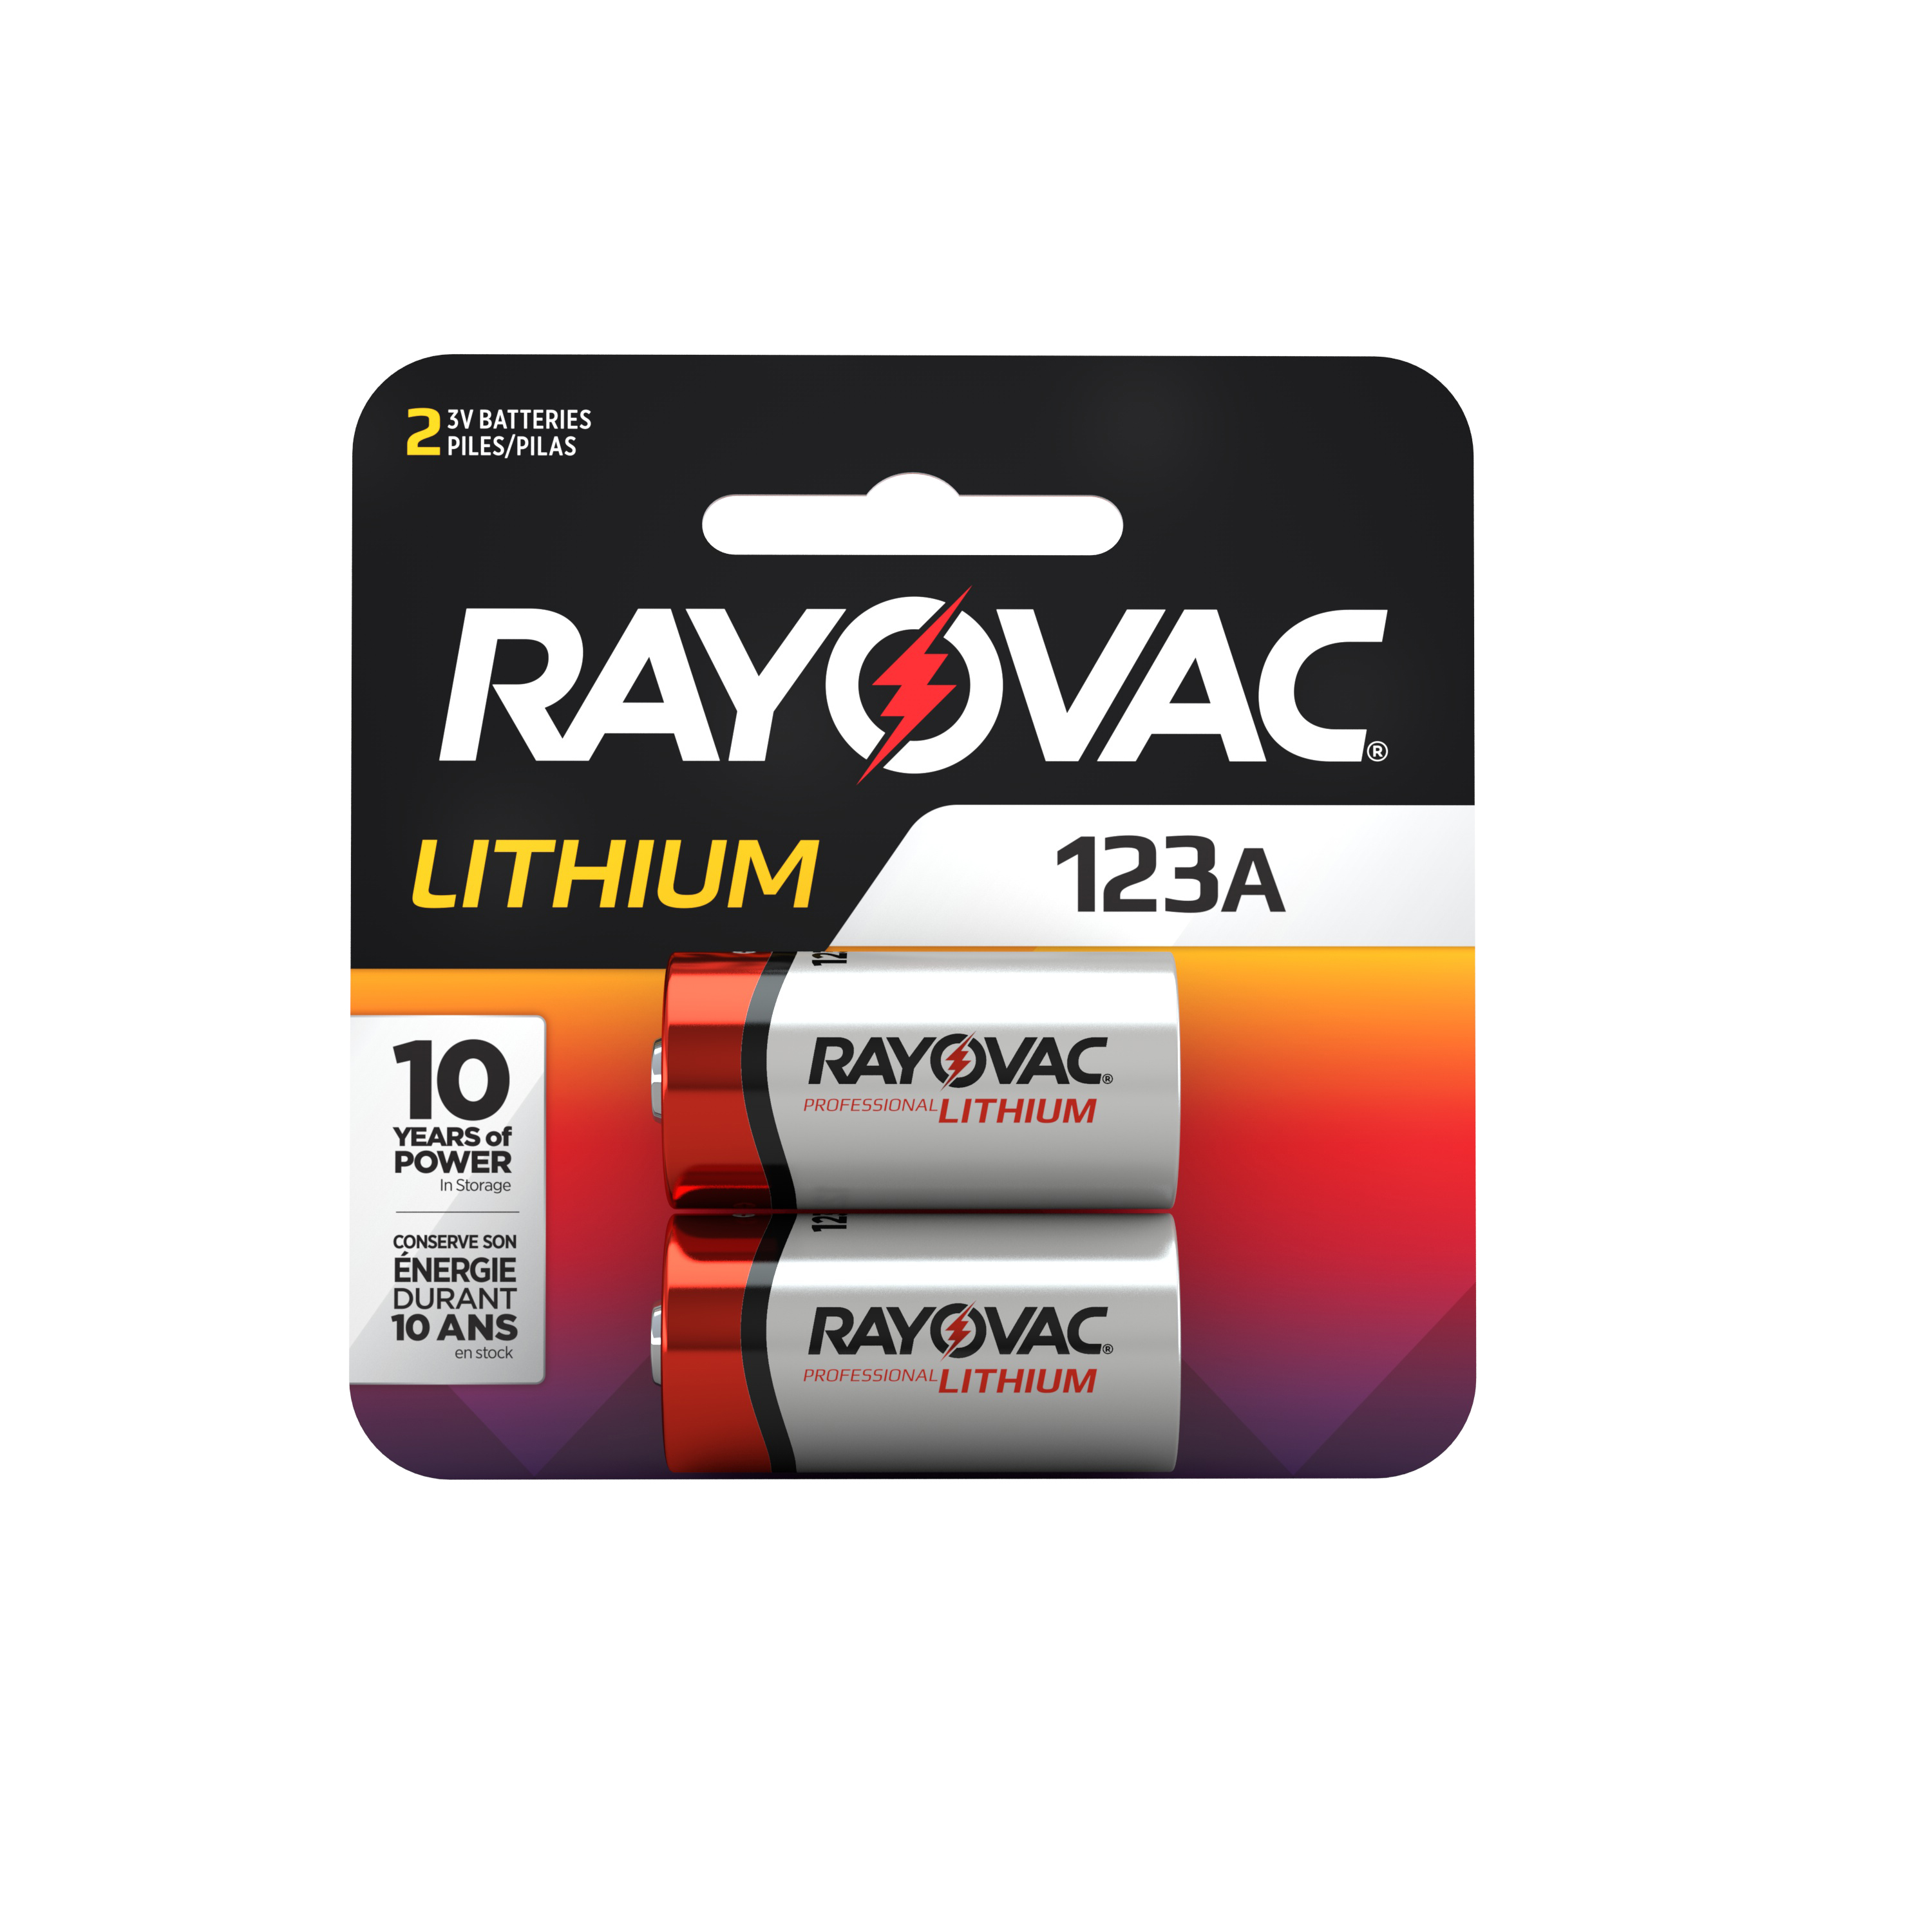 Rayovac Lithium 123A Batteries, 2 Count